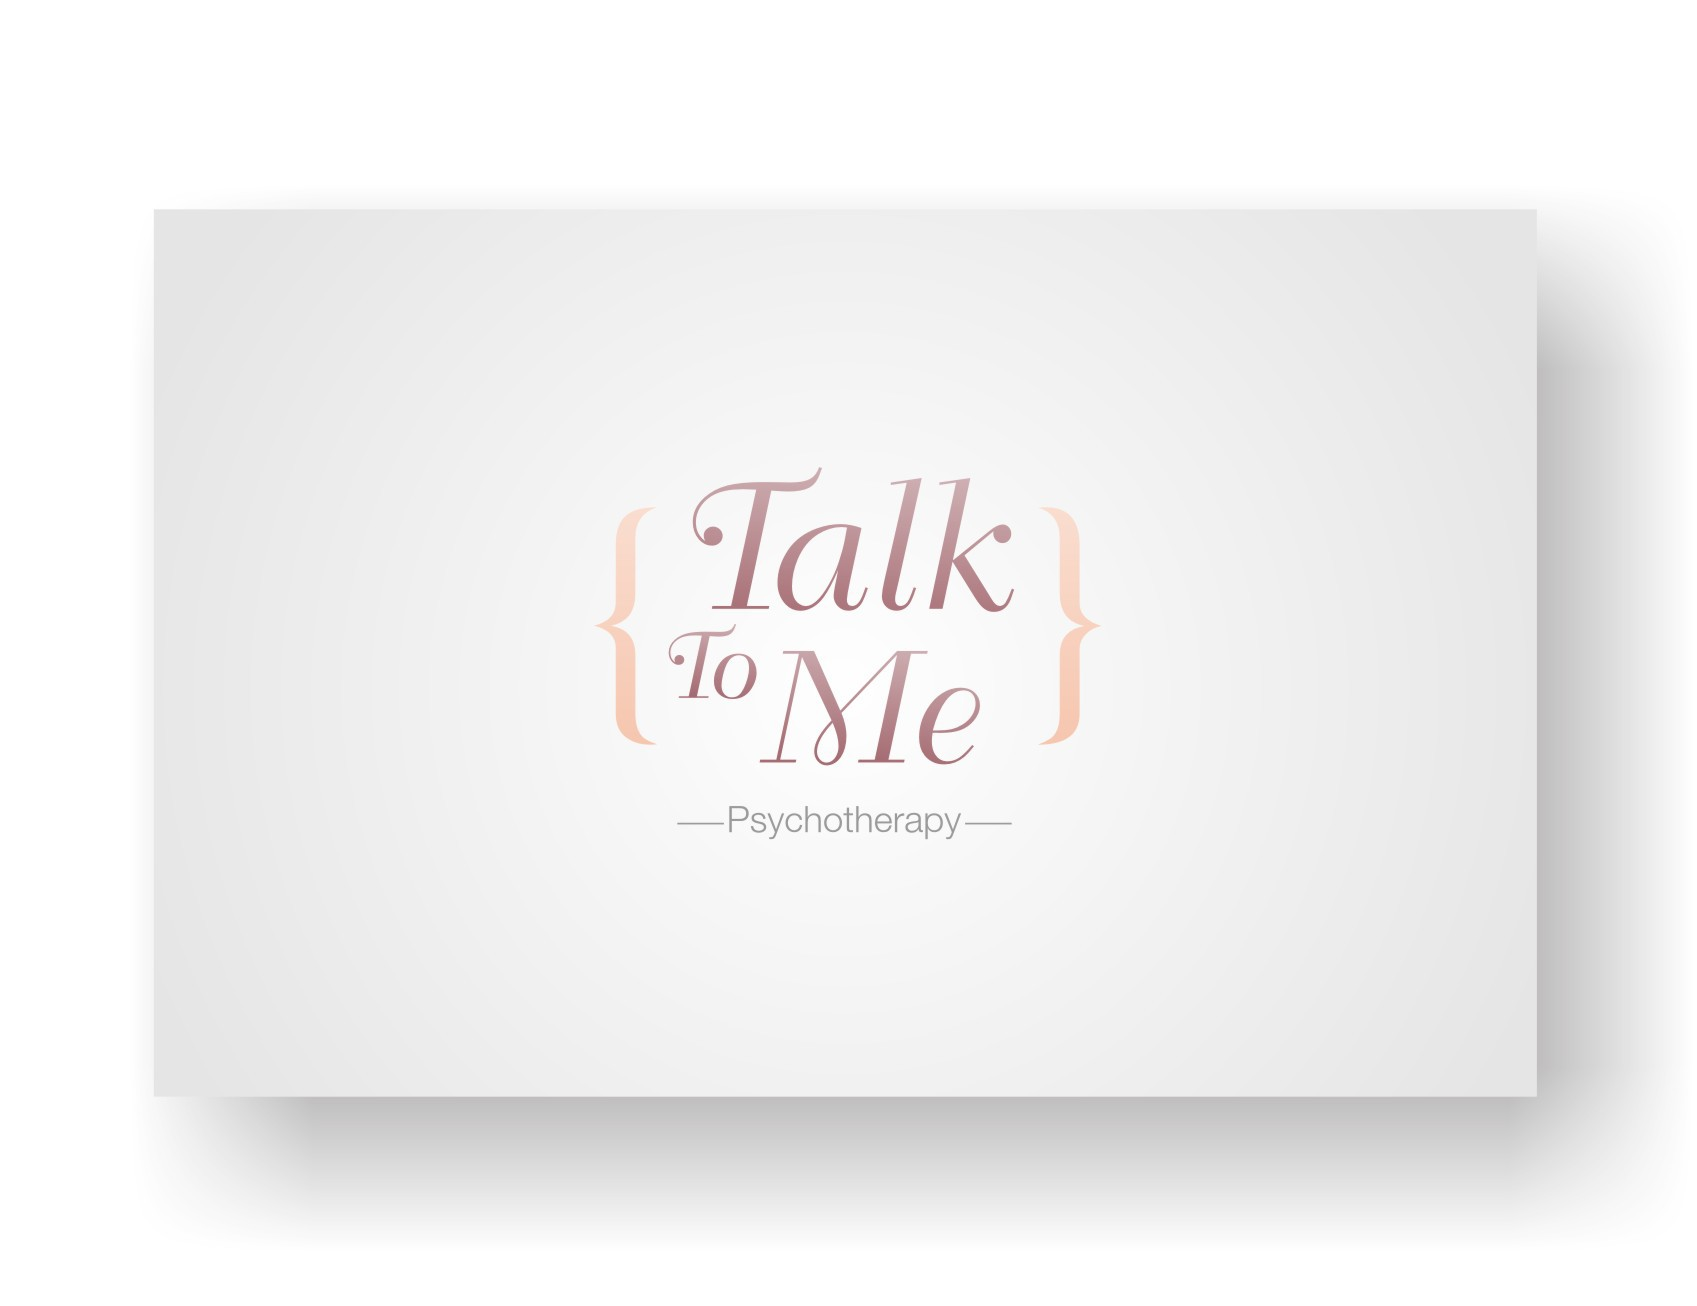 Talk To Me Psychotherapy needs a new logo